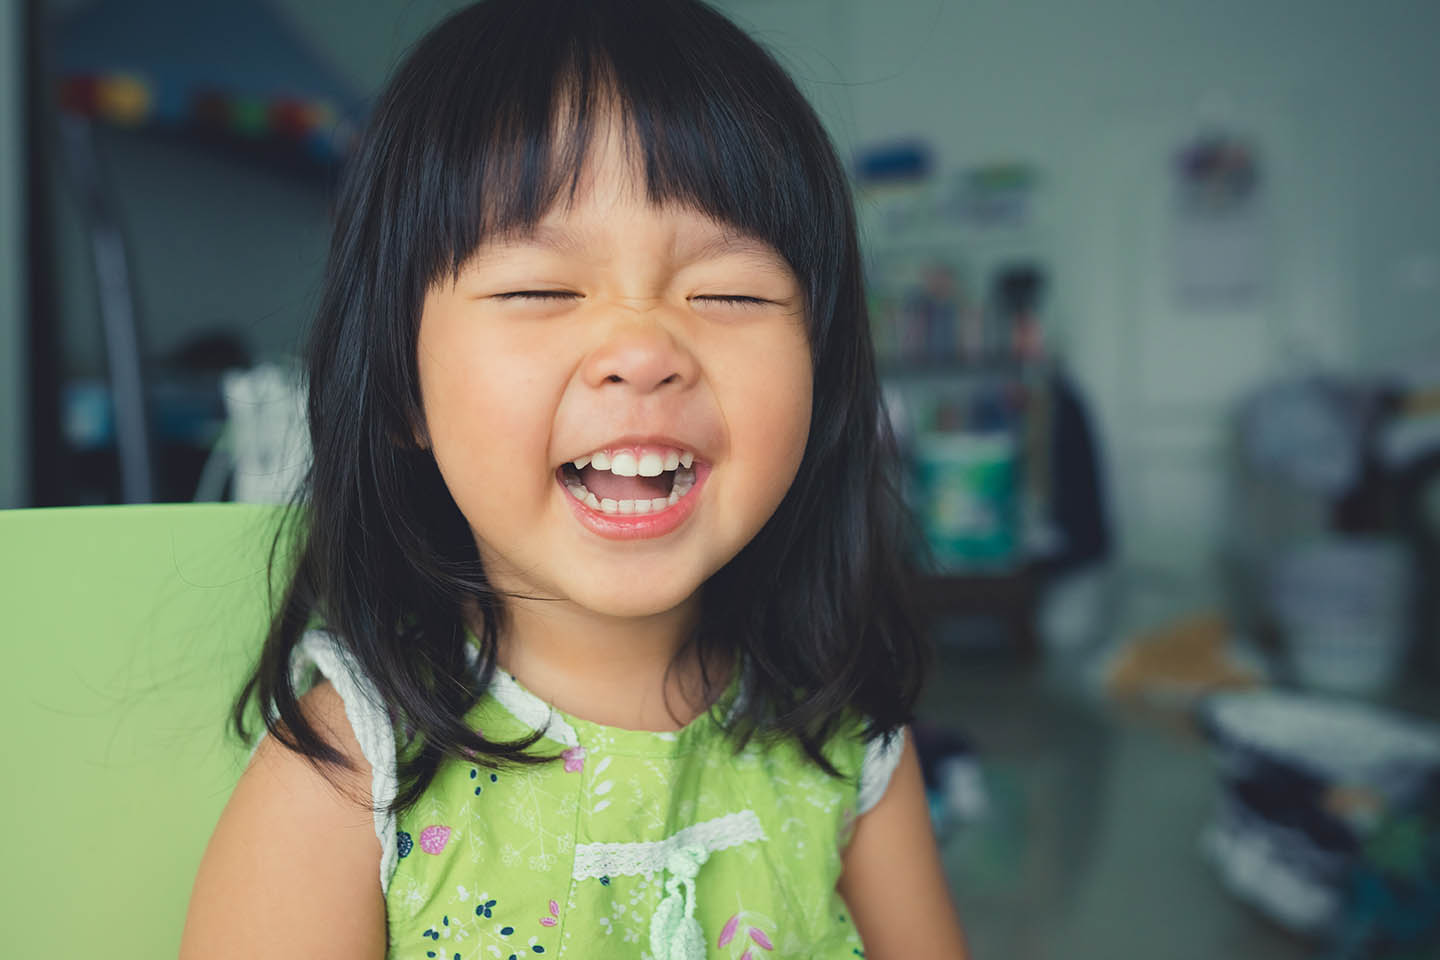 Child laughing and squinting eyes